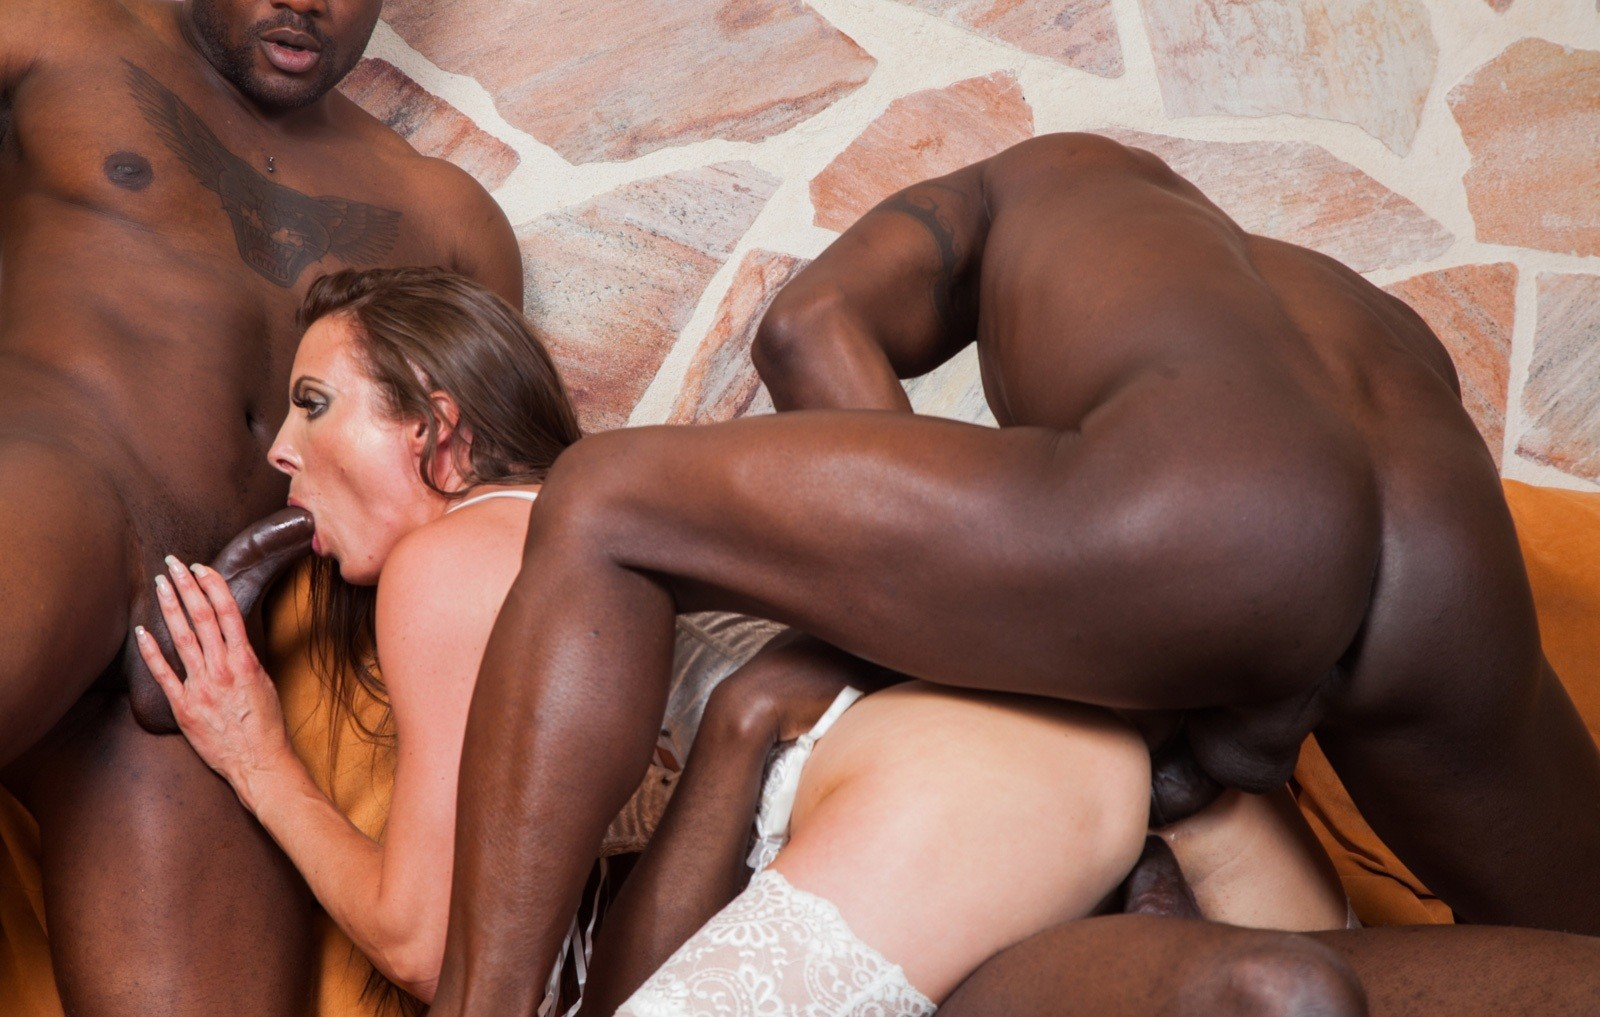 obsession-interracial-pornography